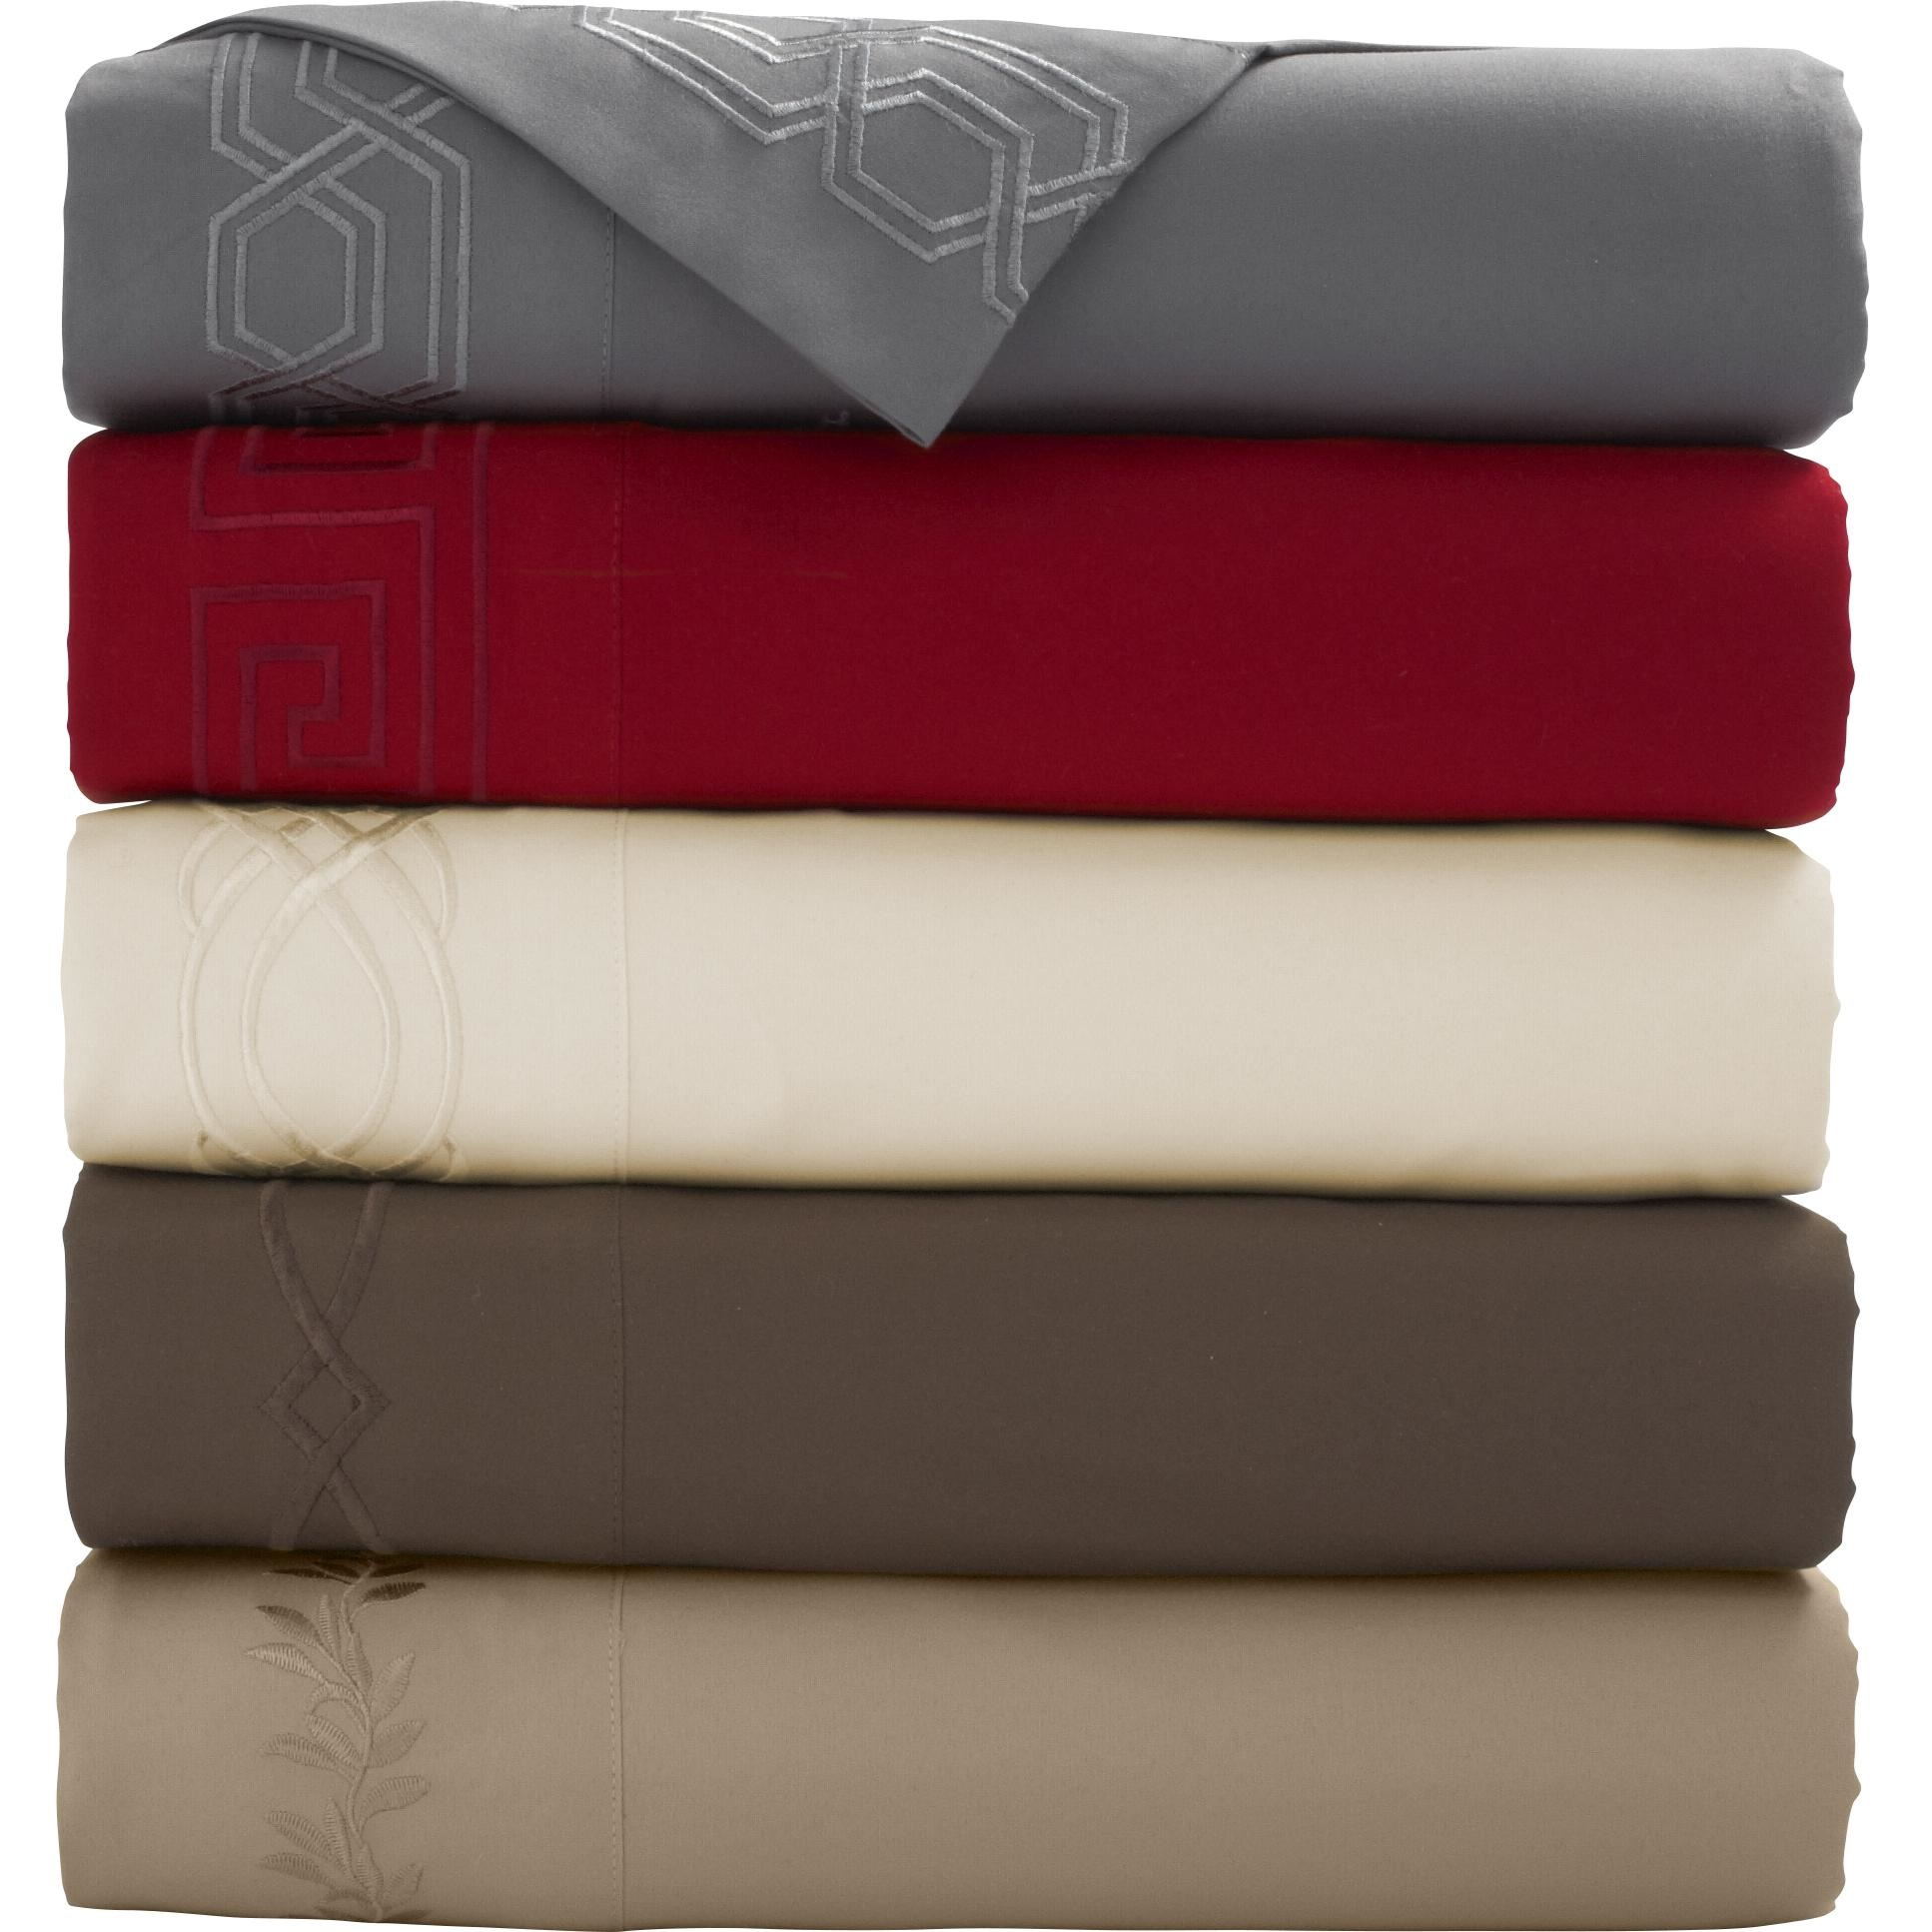 Mainstays Embroidered Microfiber Sheet Set